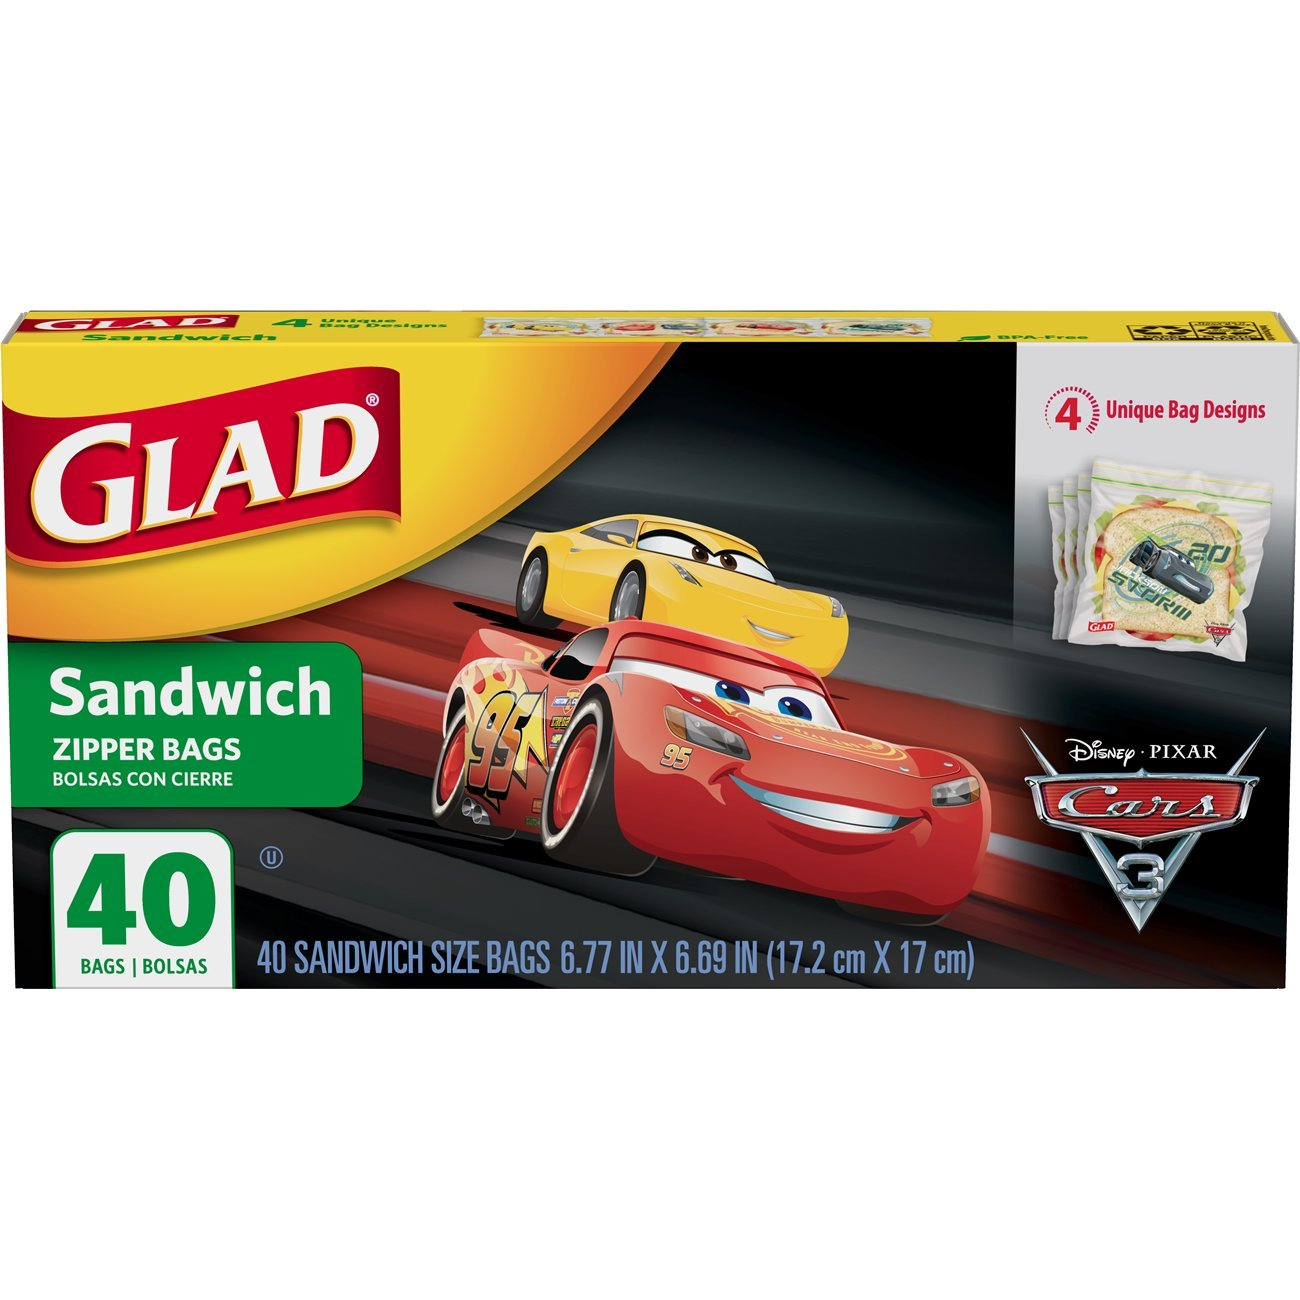 Glad Zipper Food Storage Sandwich Bags - Disney-Pixar Cars - 40 Count (Packaging may vary)